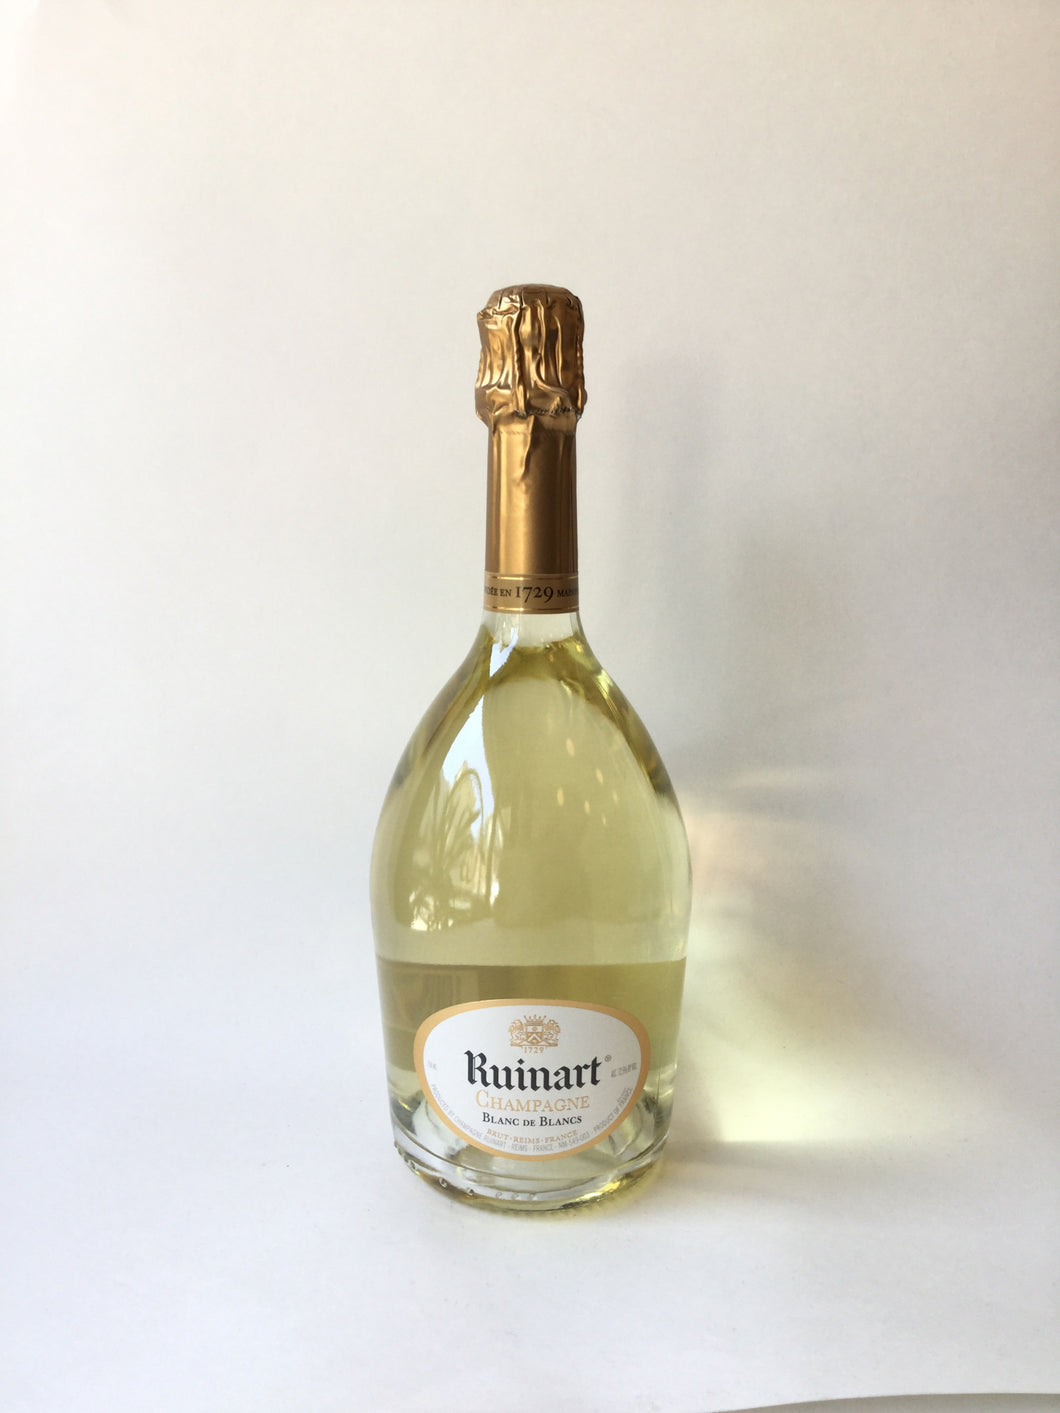 Ruinart Blanc De Blancs Brut, Champagne NV, 750ml - Frankly Wines